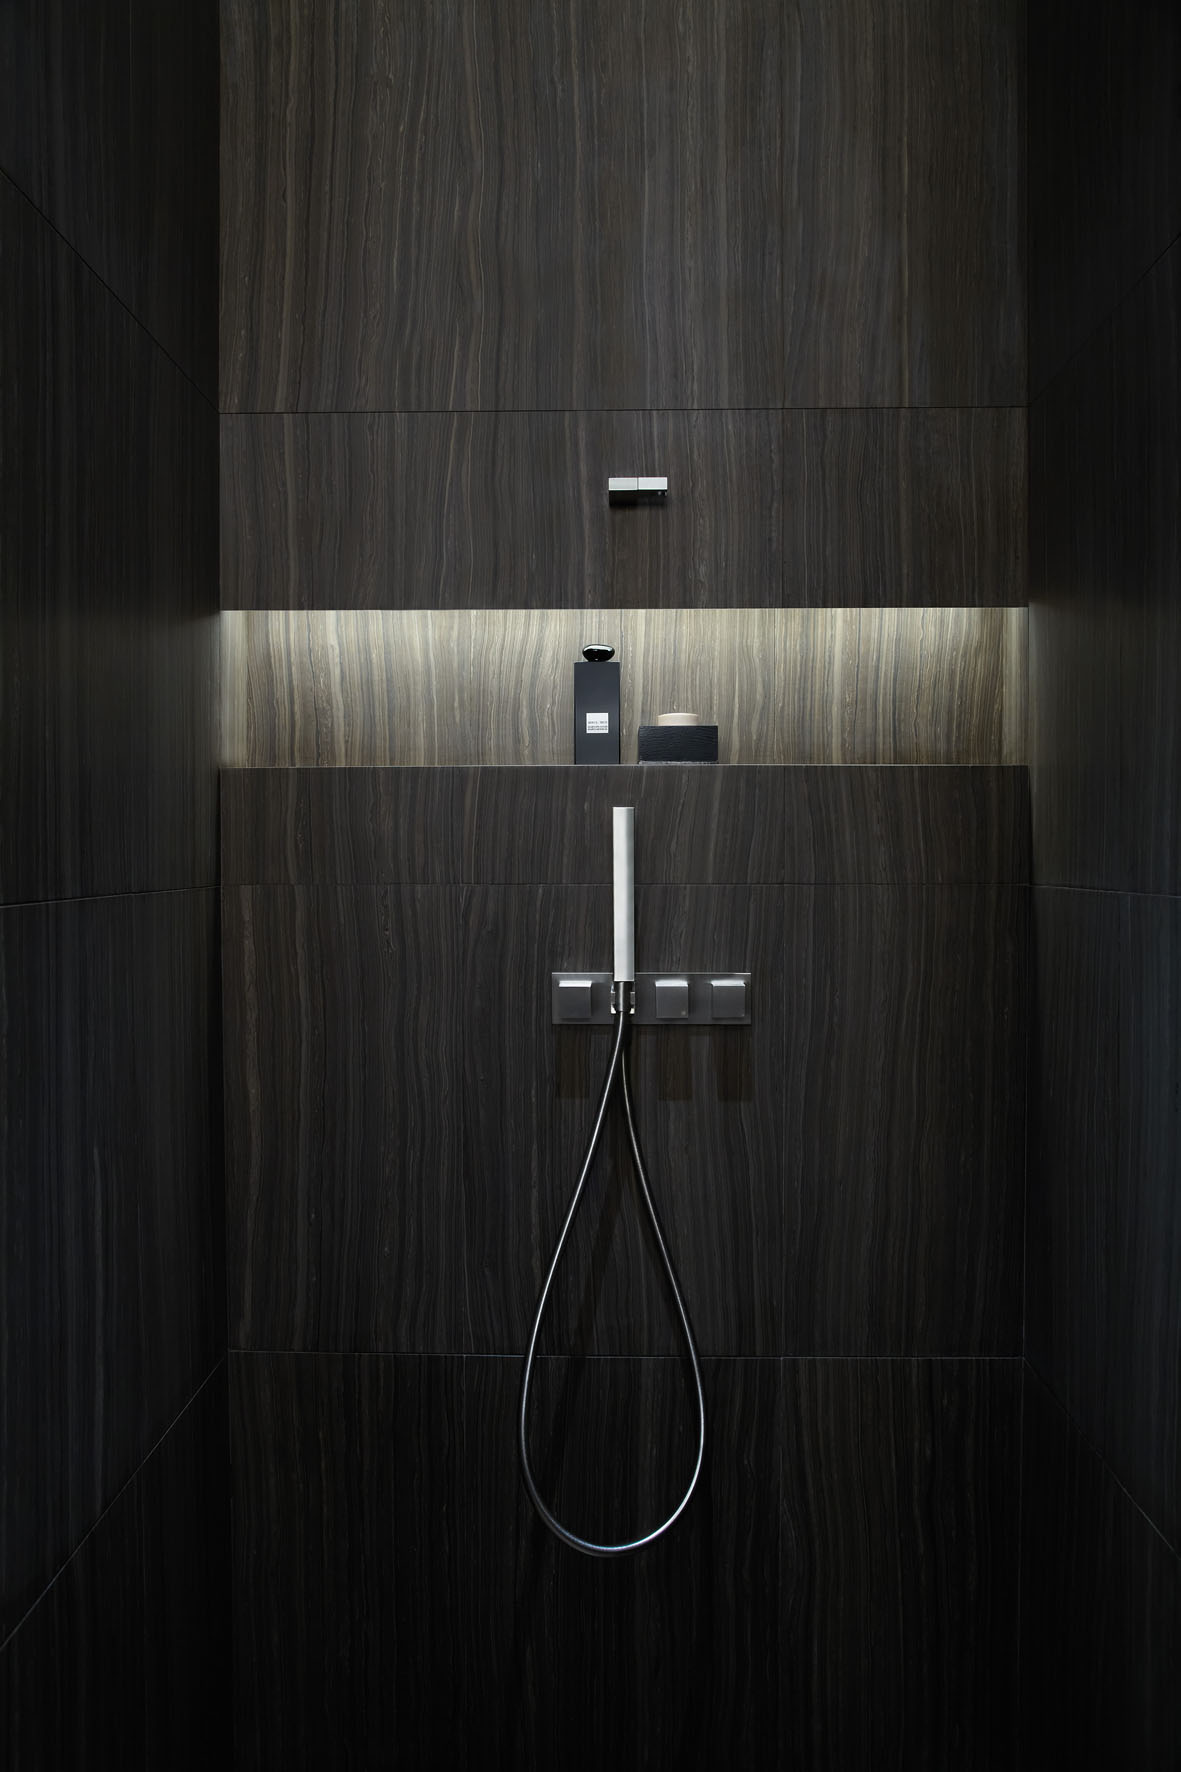 World s first armani hotel unveiled in burj khalifa dubai for Bathroom strip light